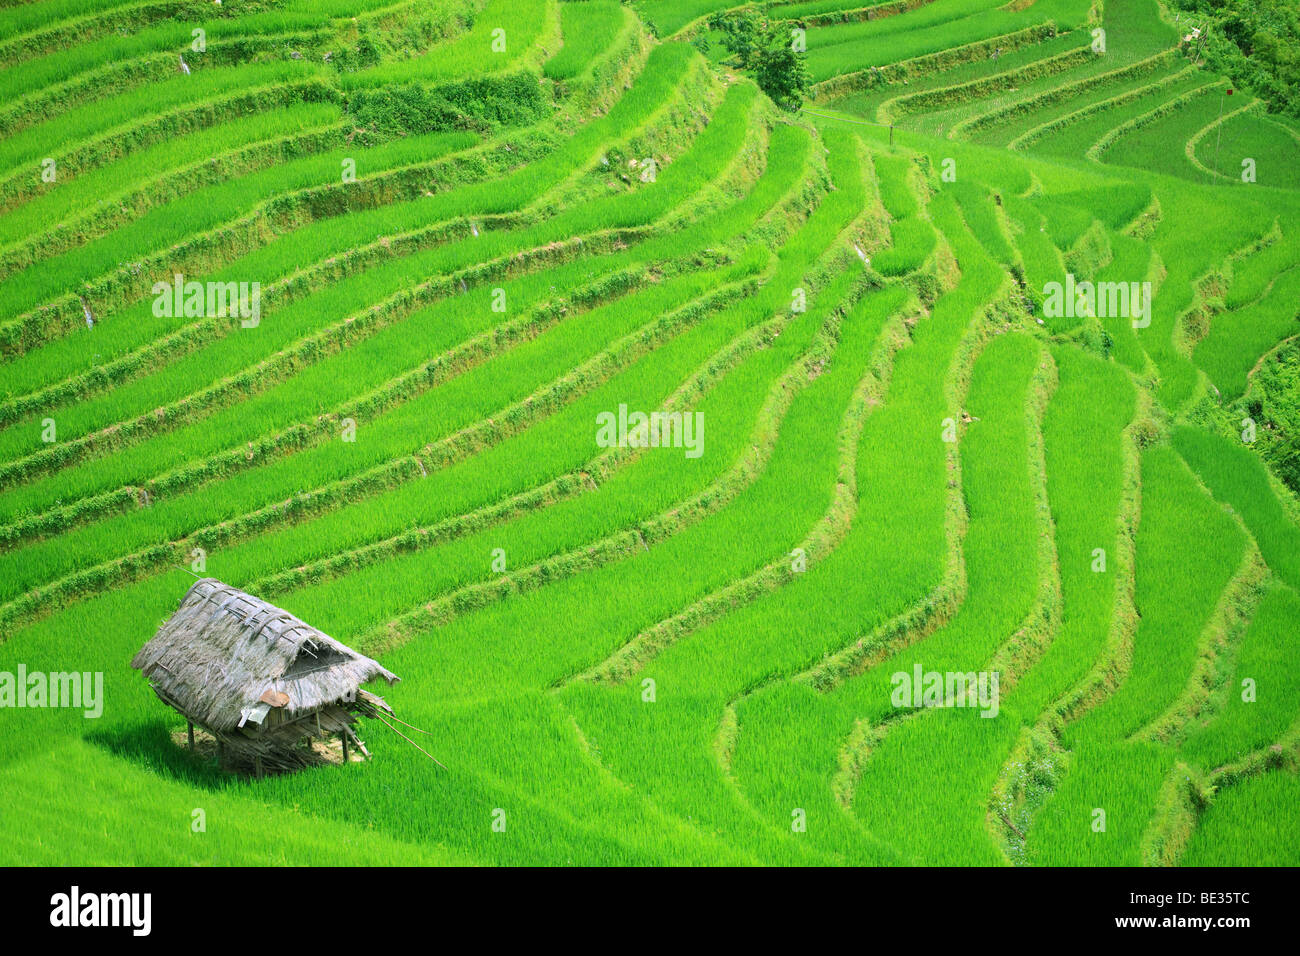 Rice field terraces at northern Vietnam - Stock Image